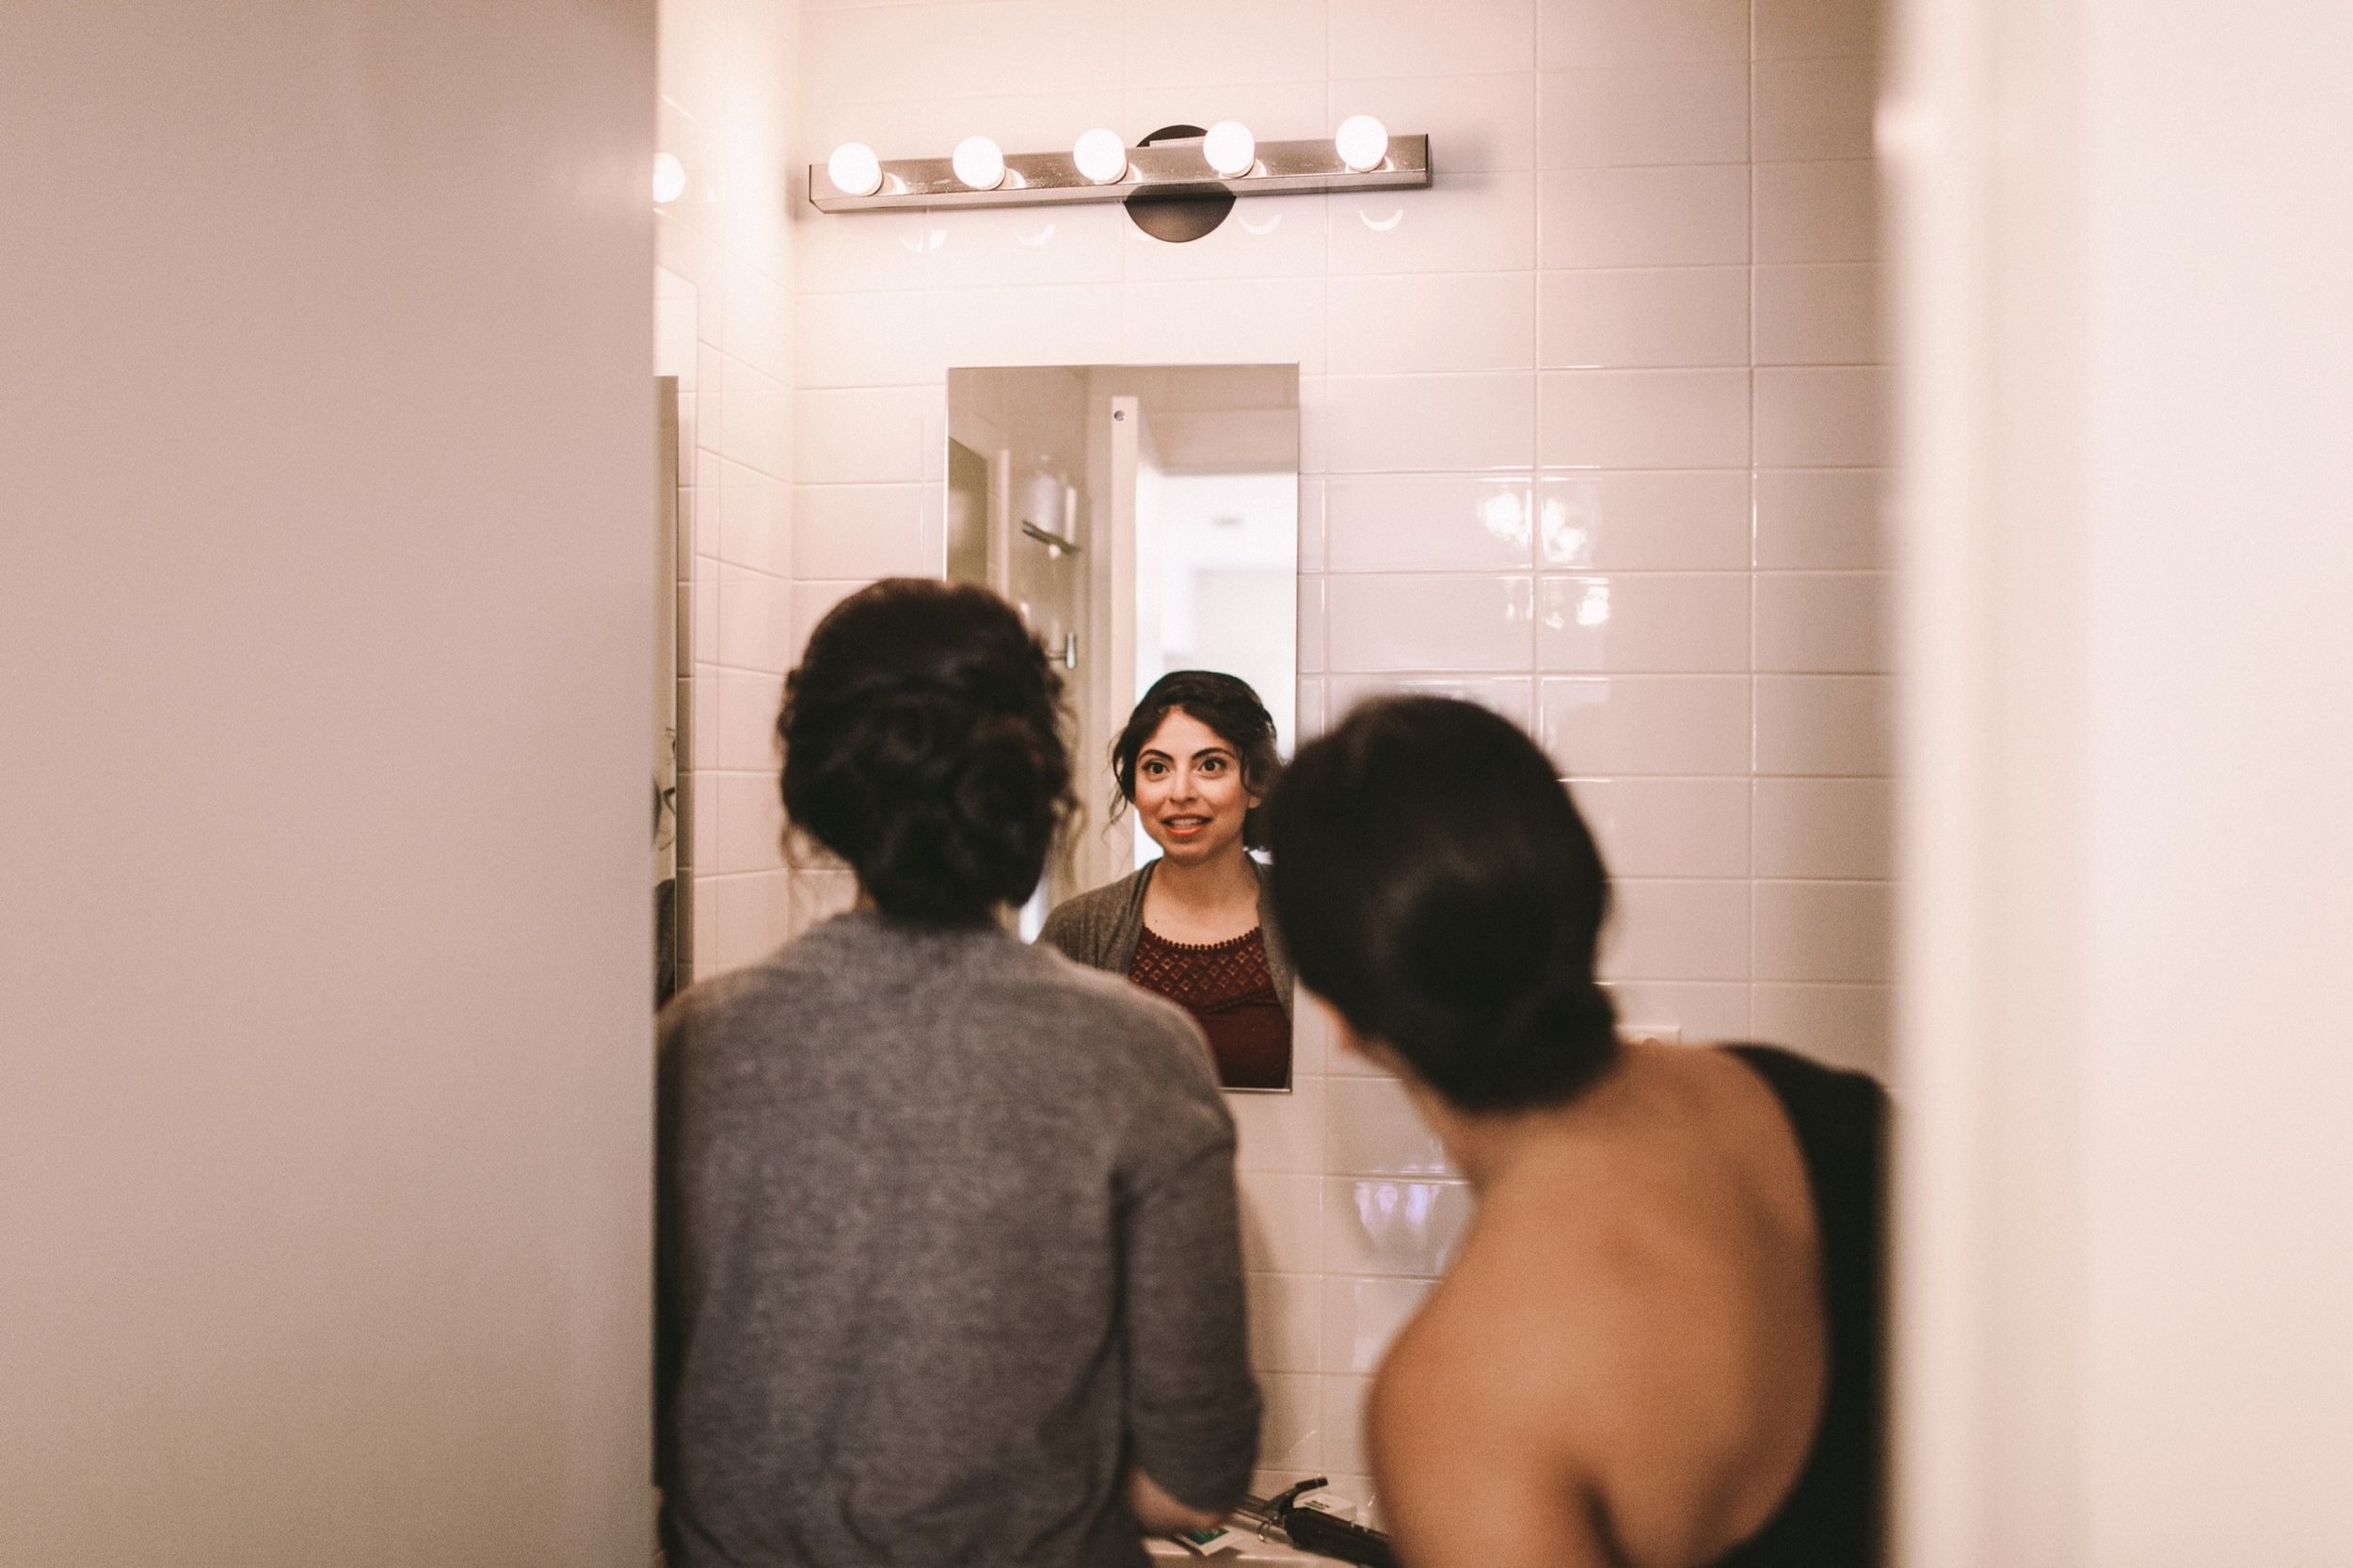 Bride Sees Wedding Make-Up for the First Time in Mirror